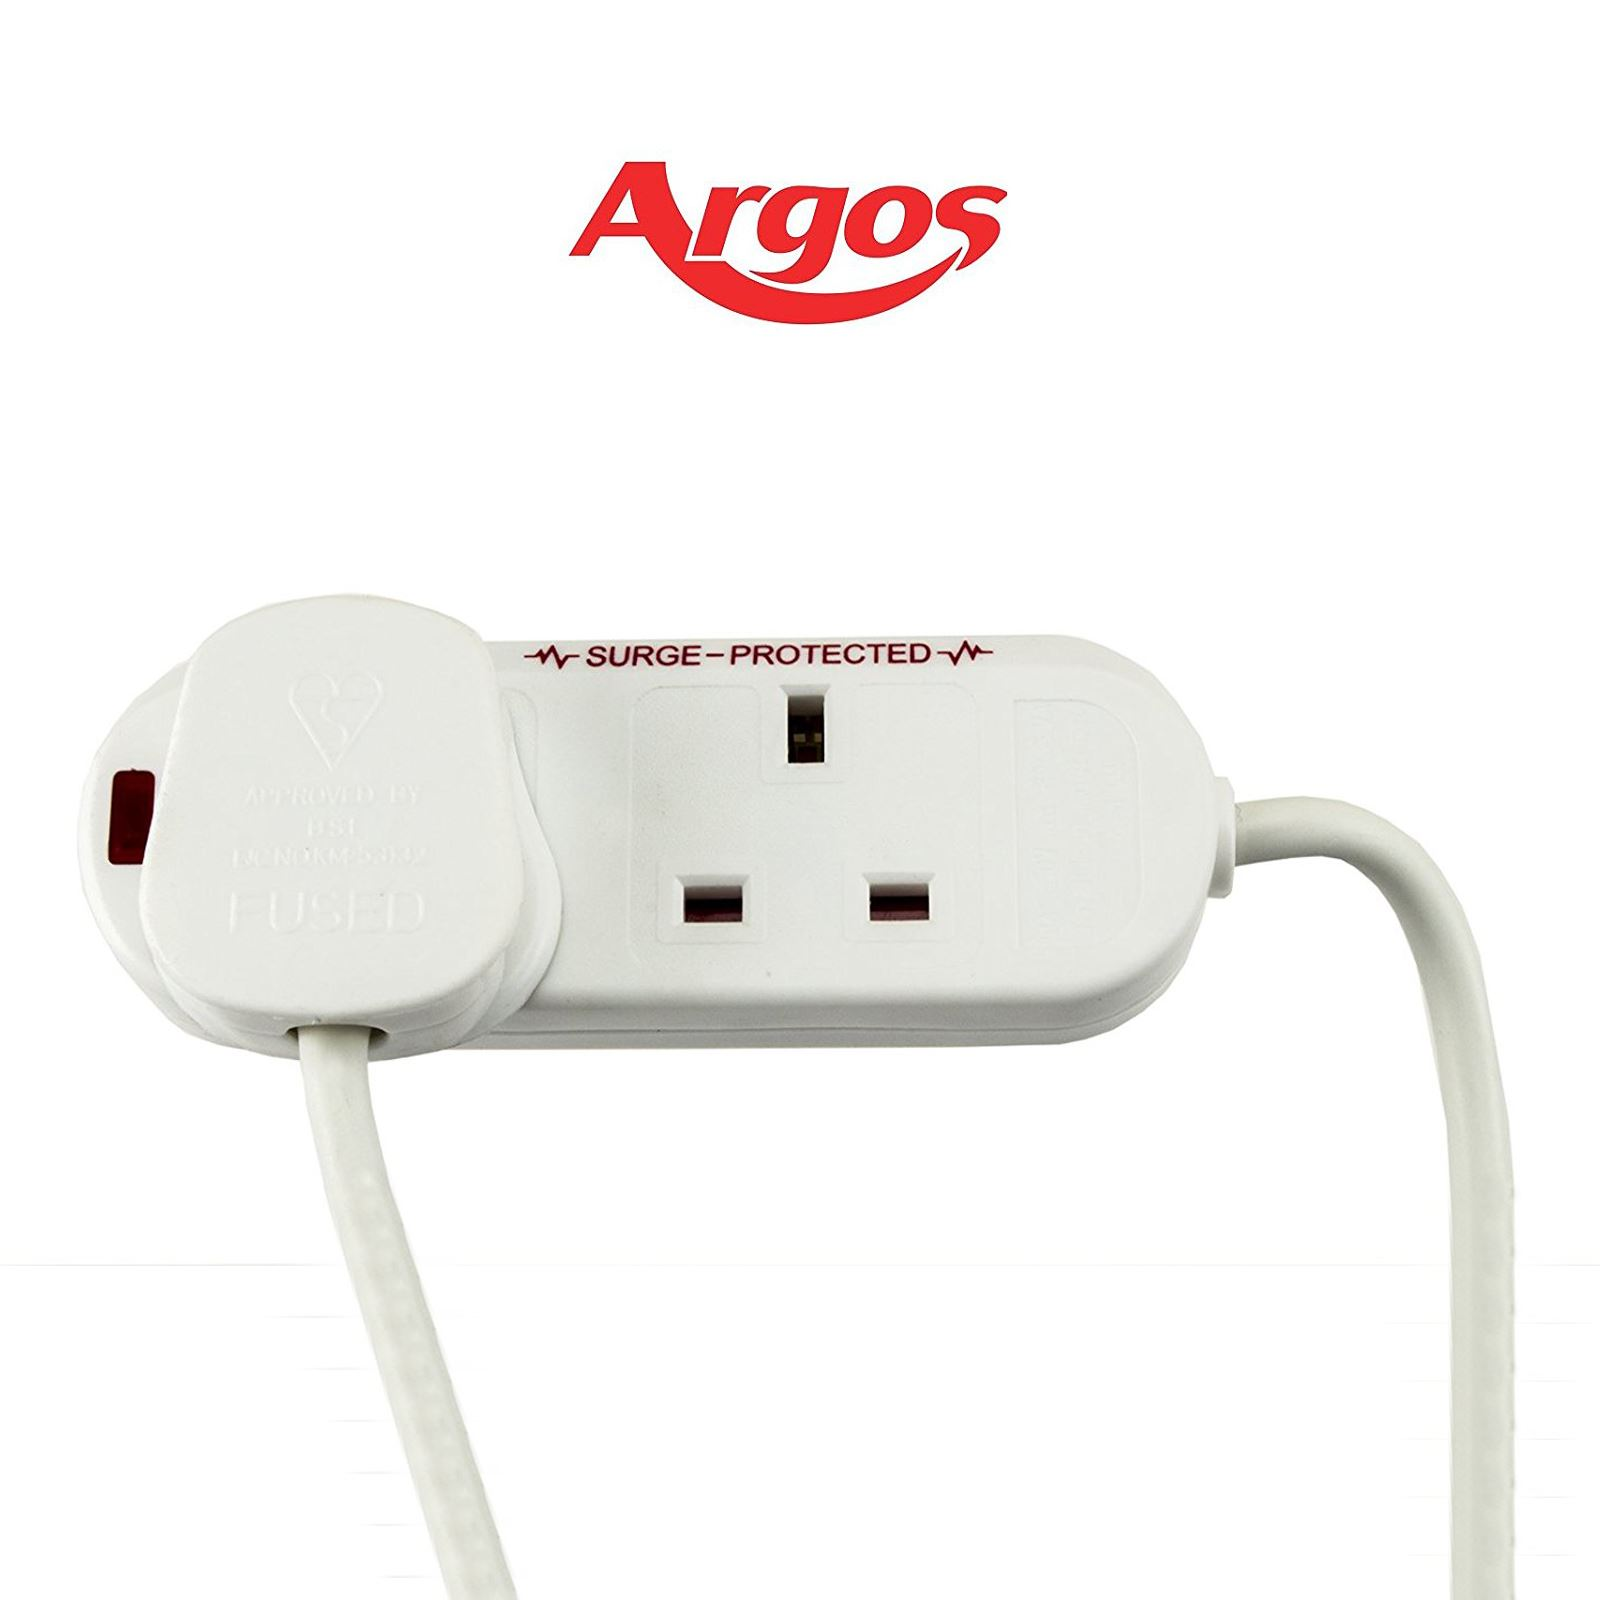 argos 2 way gang extension lead cable surge. Black Bedroom Furniture Sets. Home Design Ideas